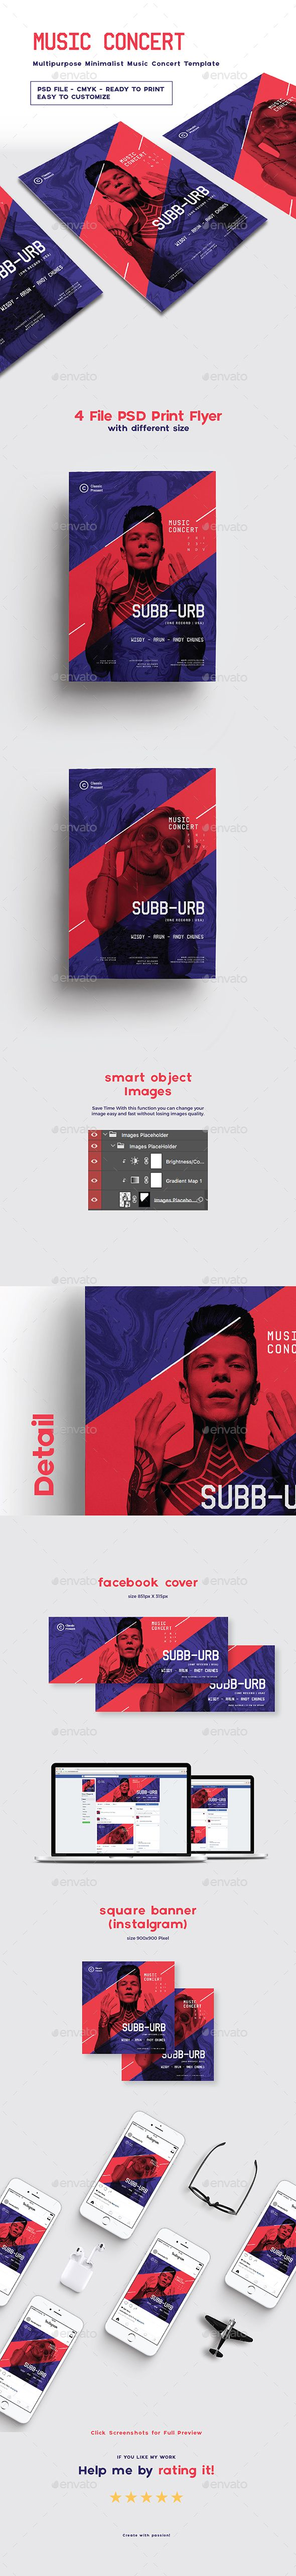 Multipurpose Minimalist Music Concert Template — Photoshop PSD #musical • Available here ➝ https://graphicriver.net/item/multipurpose-minimalist-music-concert-template/20868628?ref=pxcr